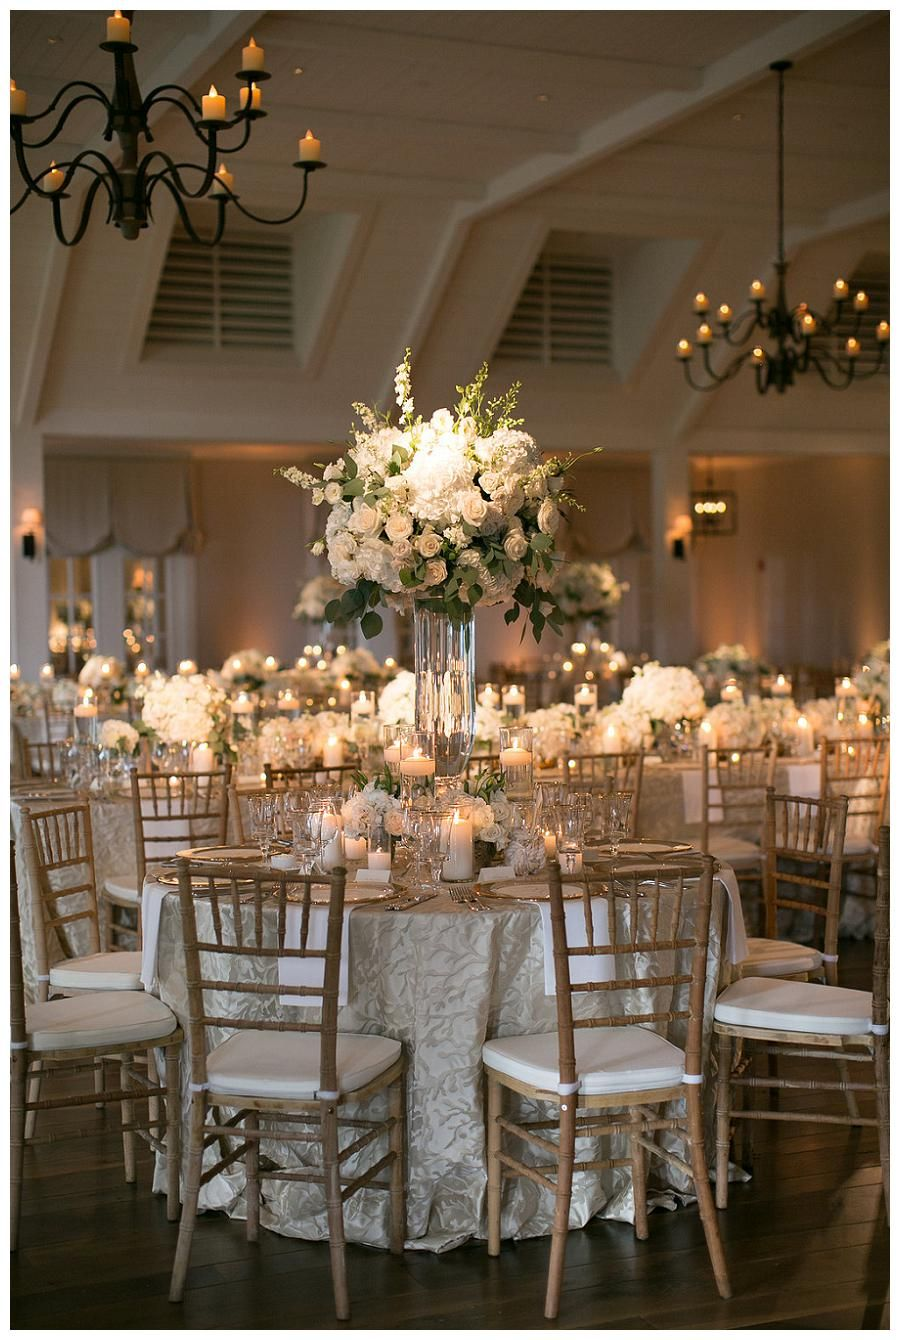 36 white wedding decoration ideas wedding decorations wedding gold ivory and white wedding reception decor with white florals in glass vessels place settings of gold rimmed crystal and gold rimmed glass chargers junglespirit Choice Image